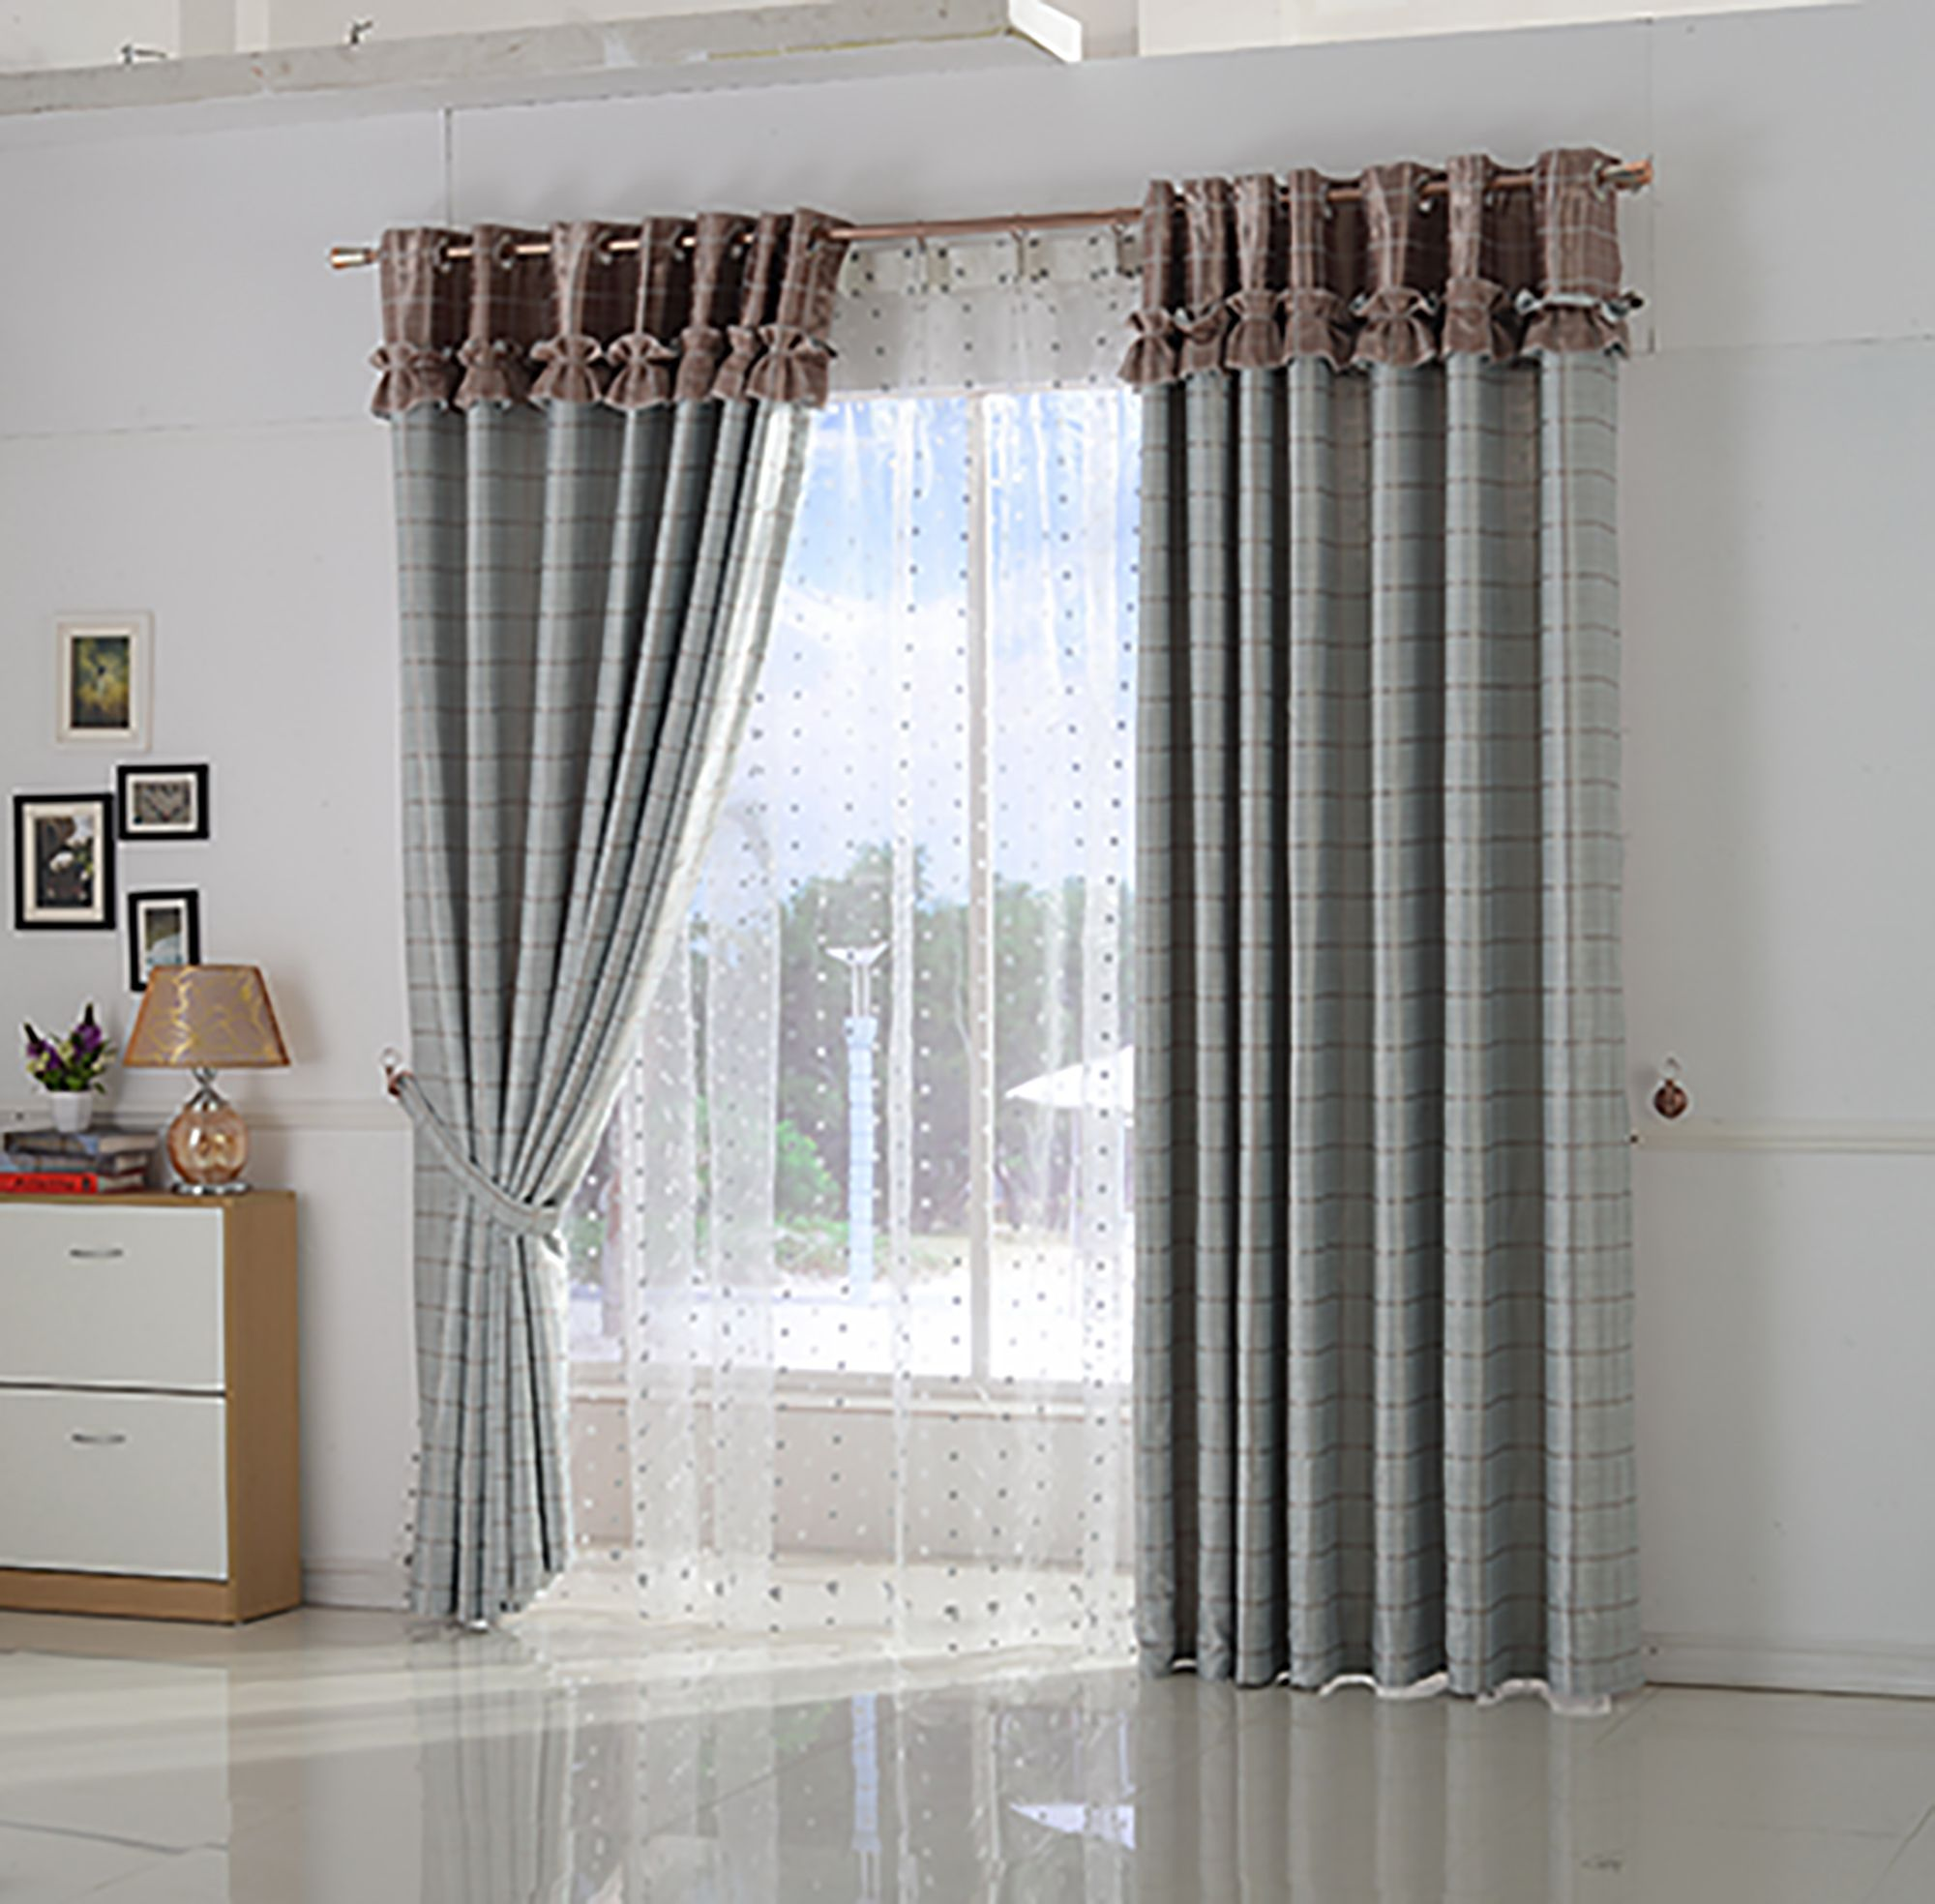 Design Curtain Pole Matching Drapery Style For Your House